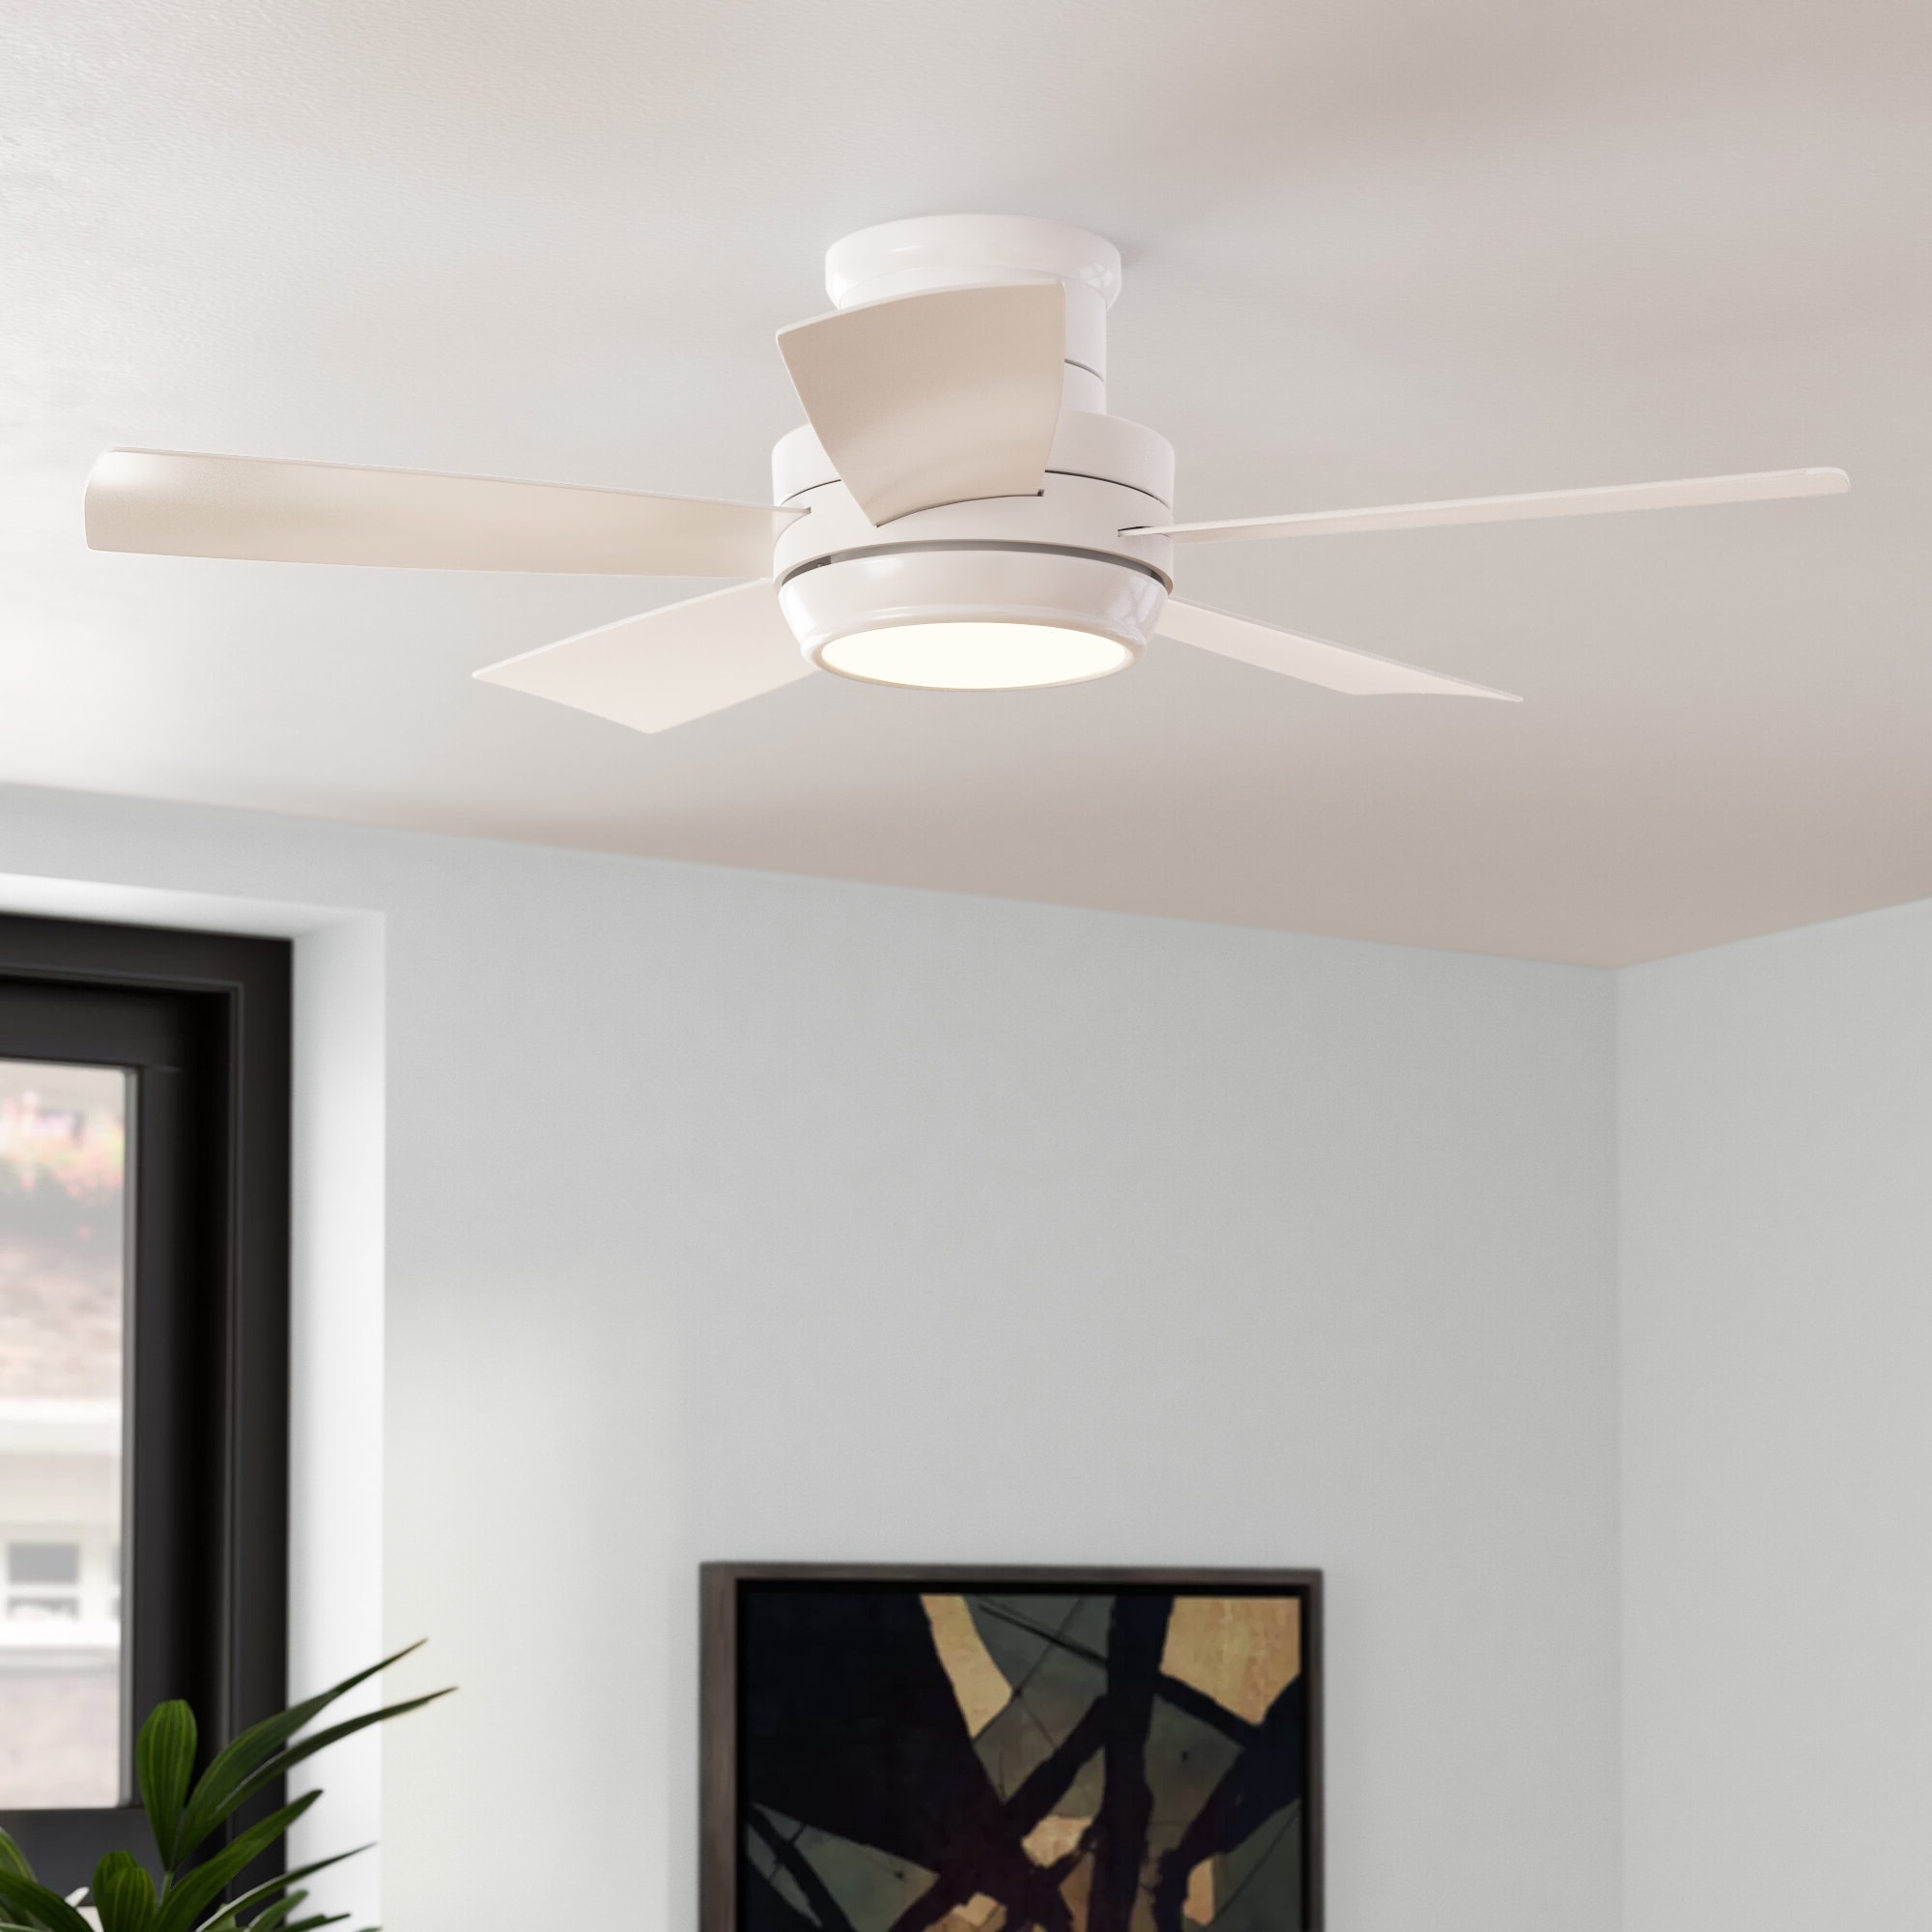 "Most Up To Date Concept Ii 3 Blade Led Ceiling Fans With Remote With Regard To 44"" Cedarton Hugger 5 Blade Led Ceiling Fan, Light Kit Included (View 19 of 20)"